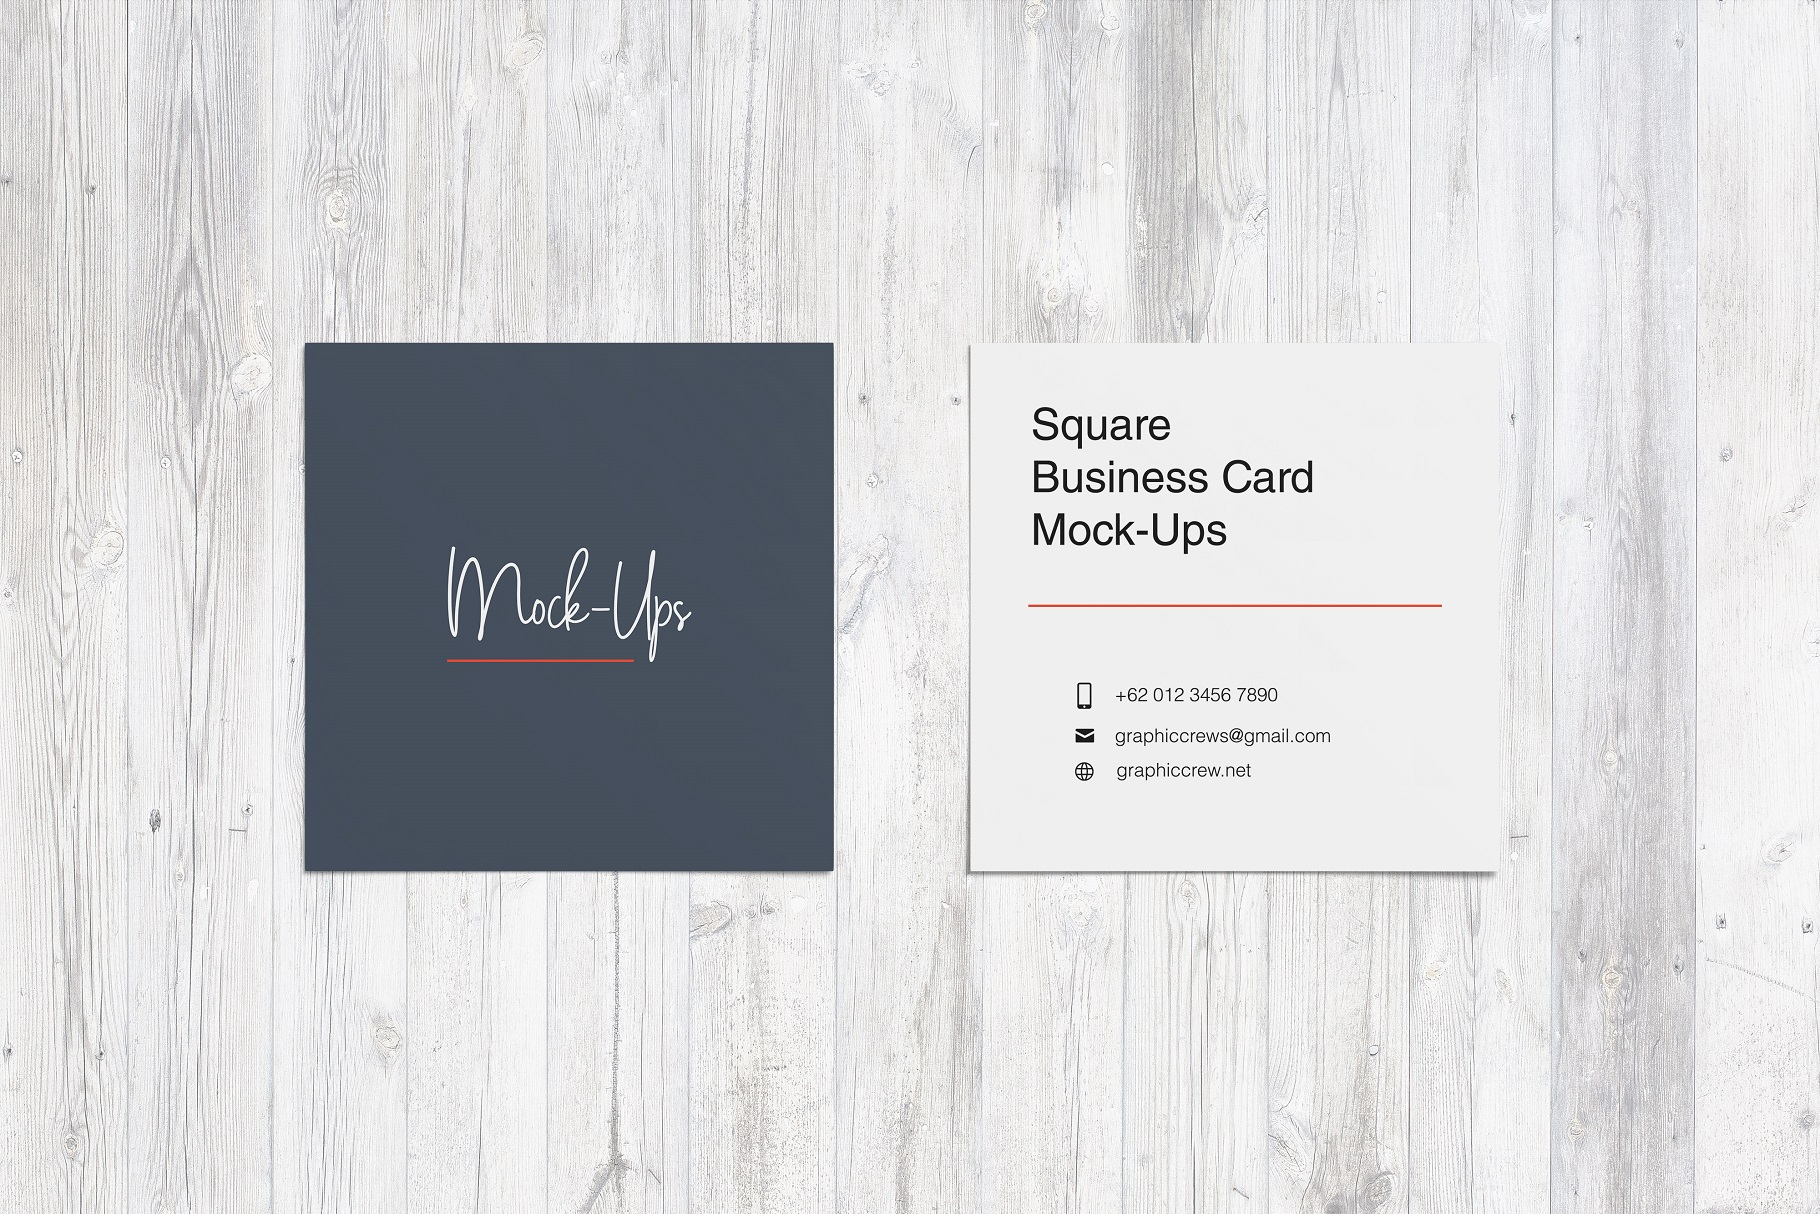 Square Business Card Mockup example image 2